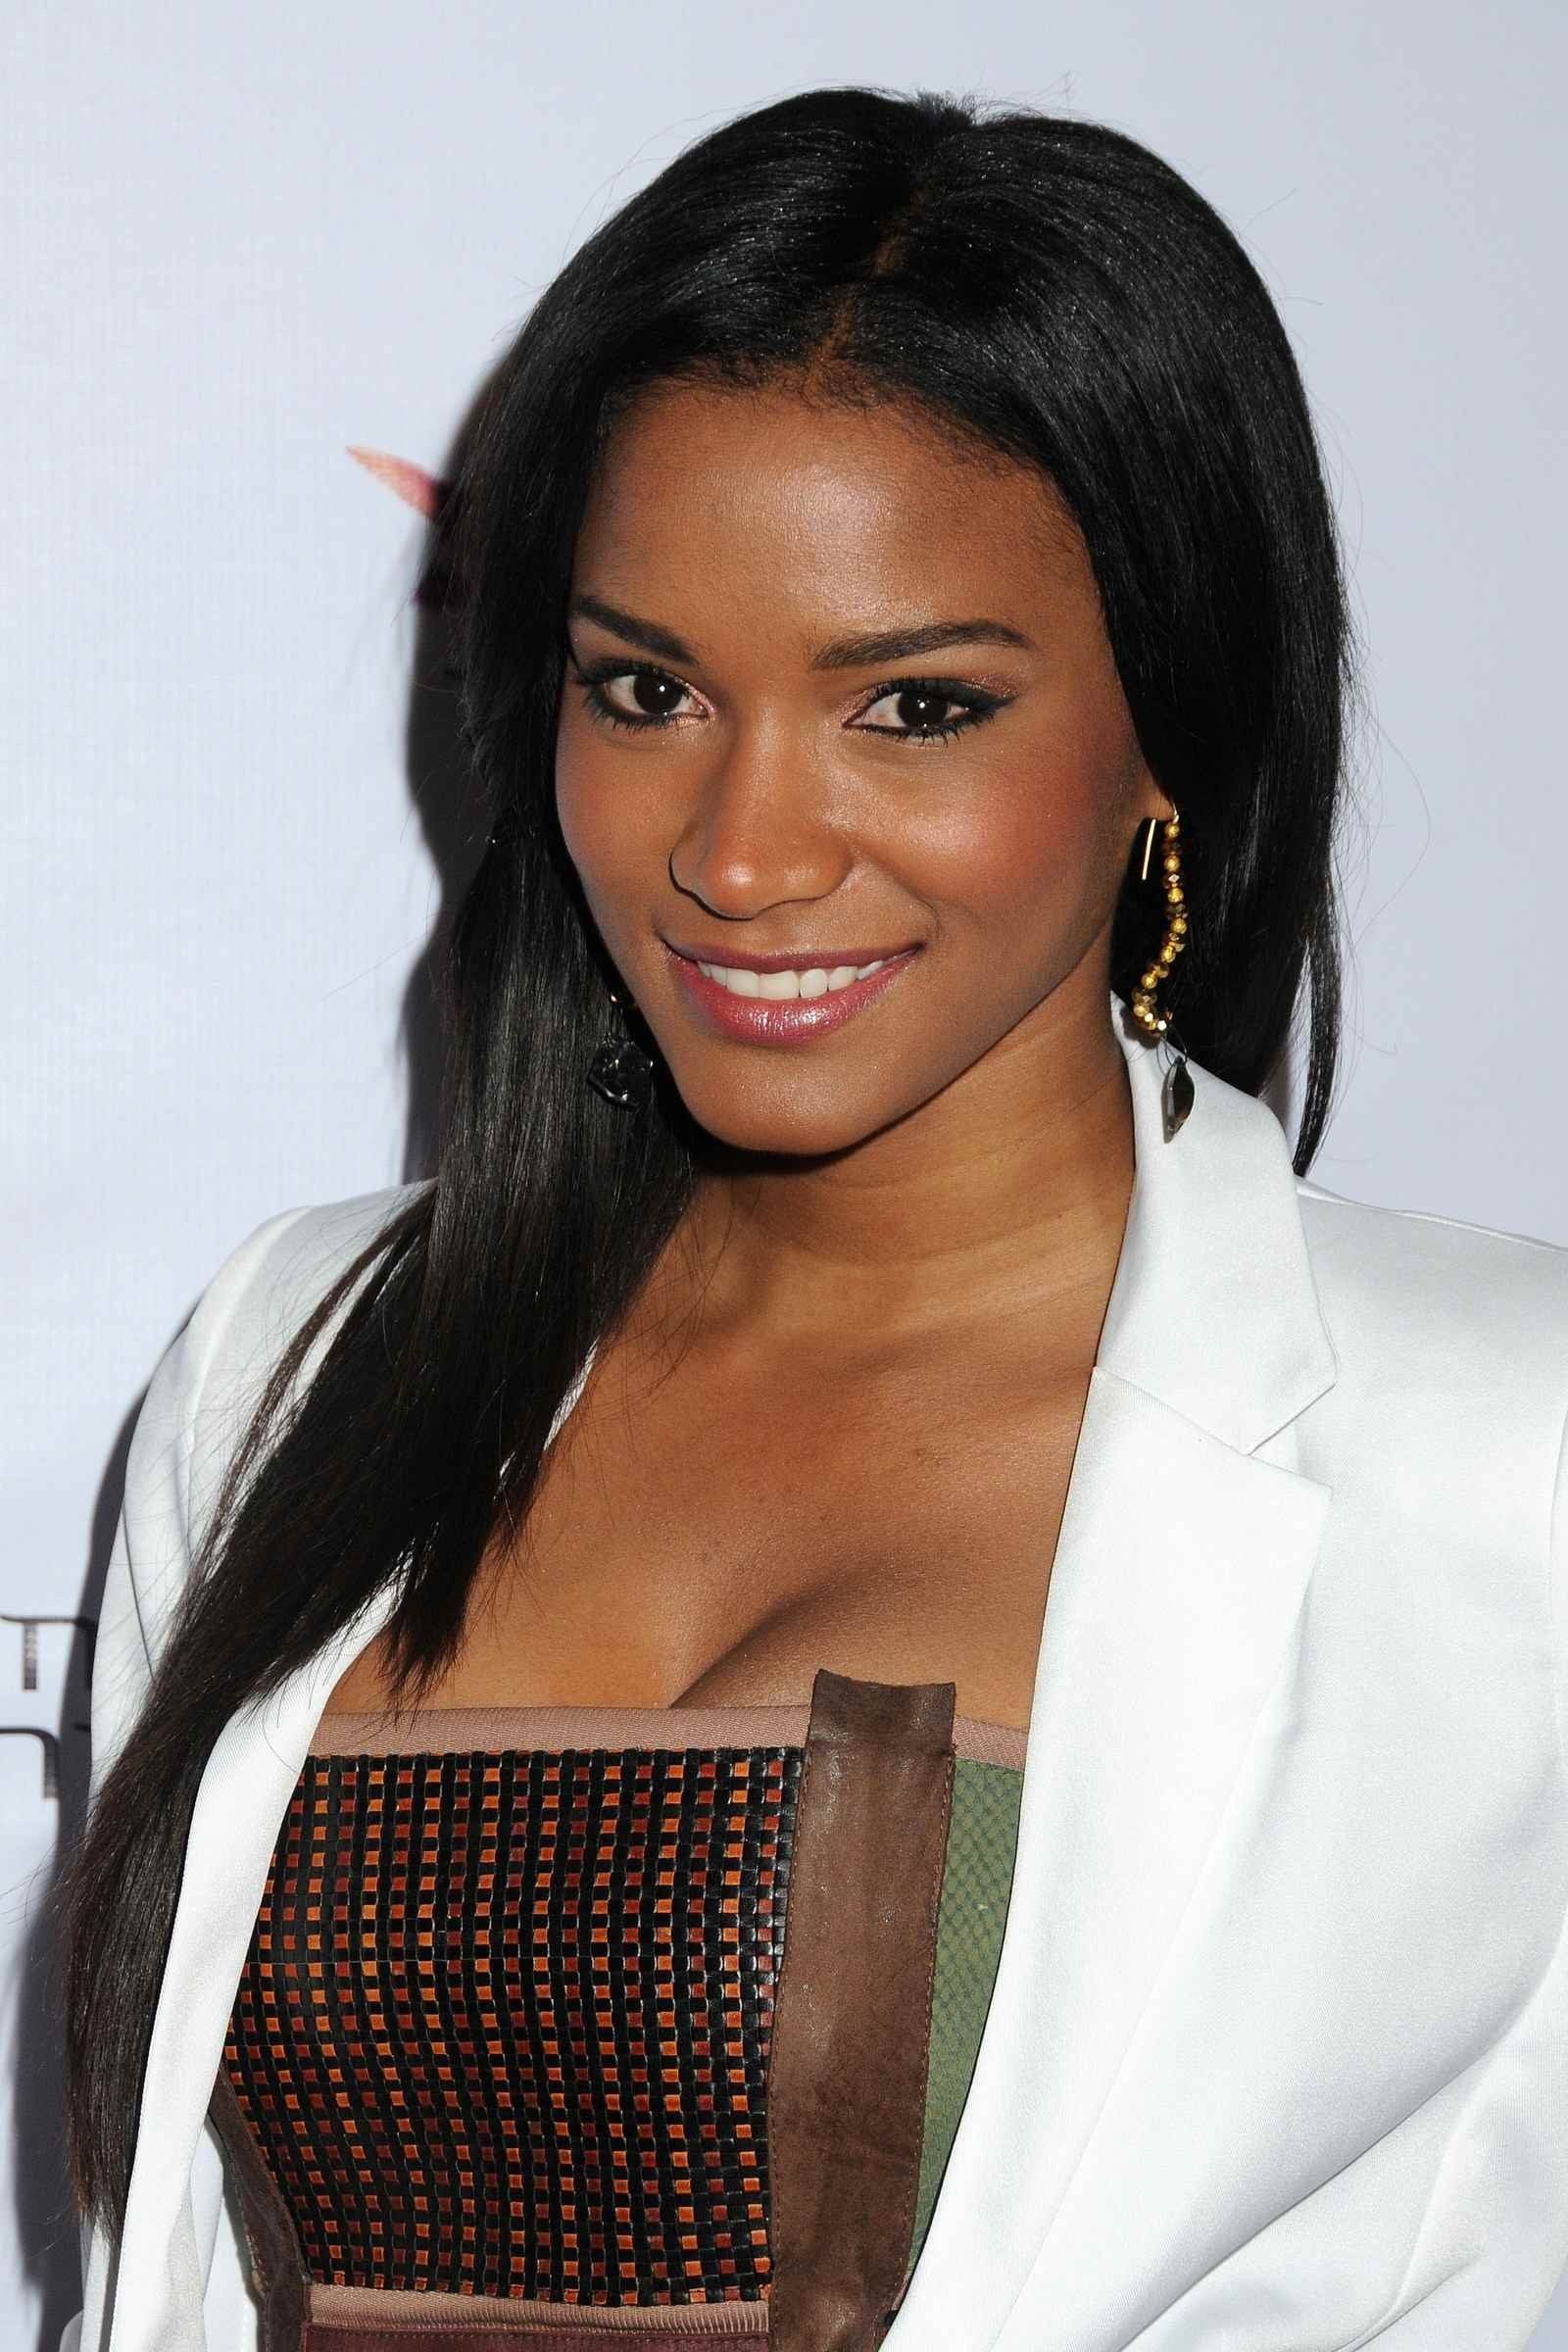 Leila Lopes | Known people - famous people news and